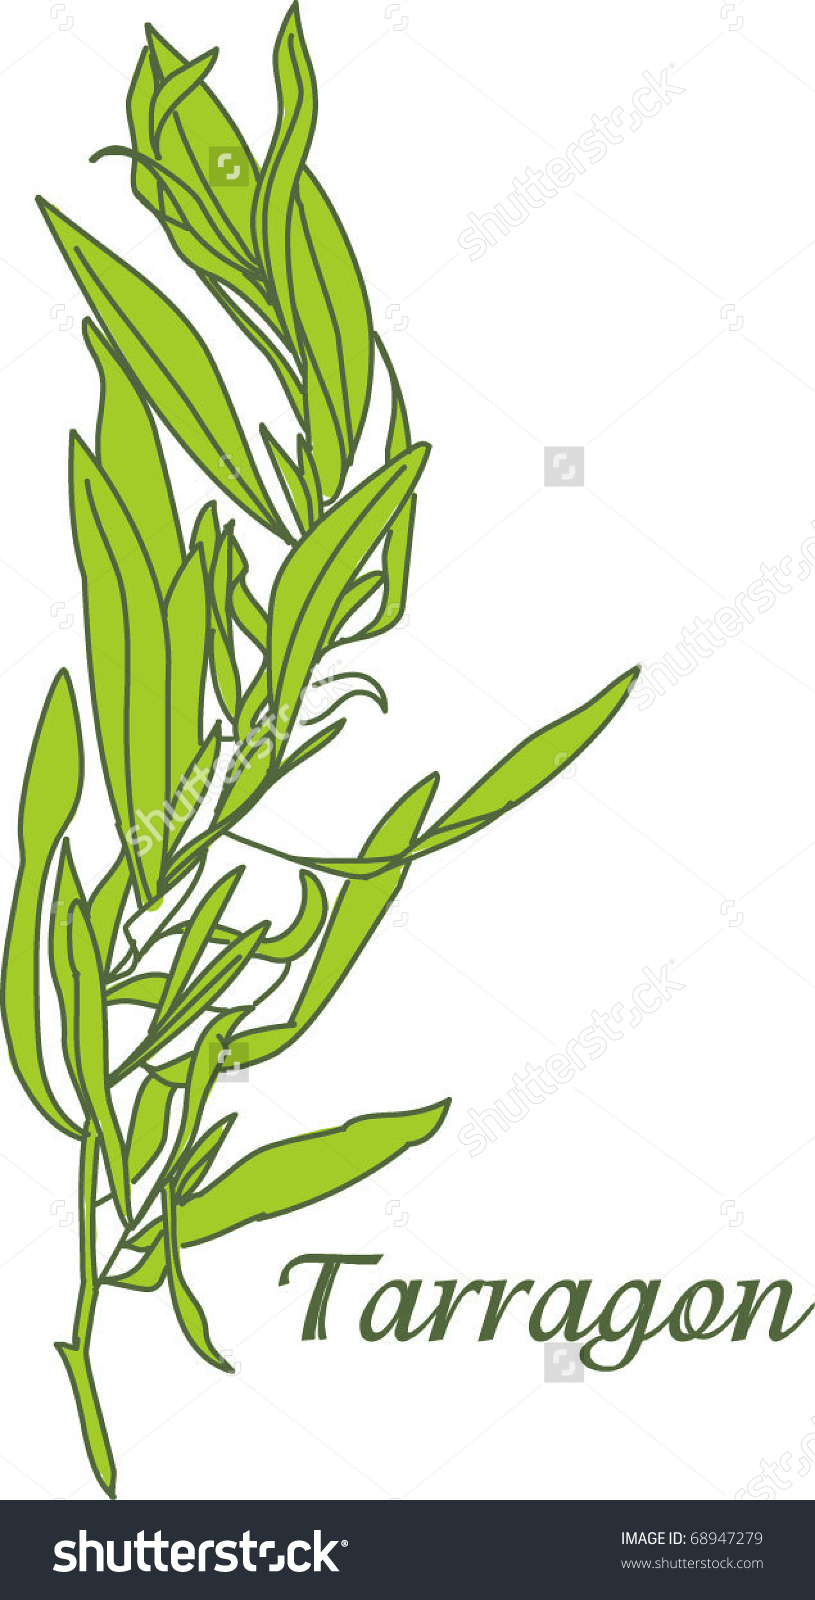 Tarragon Herb Stock Vector 68947279.